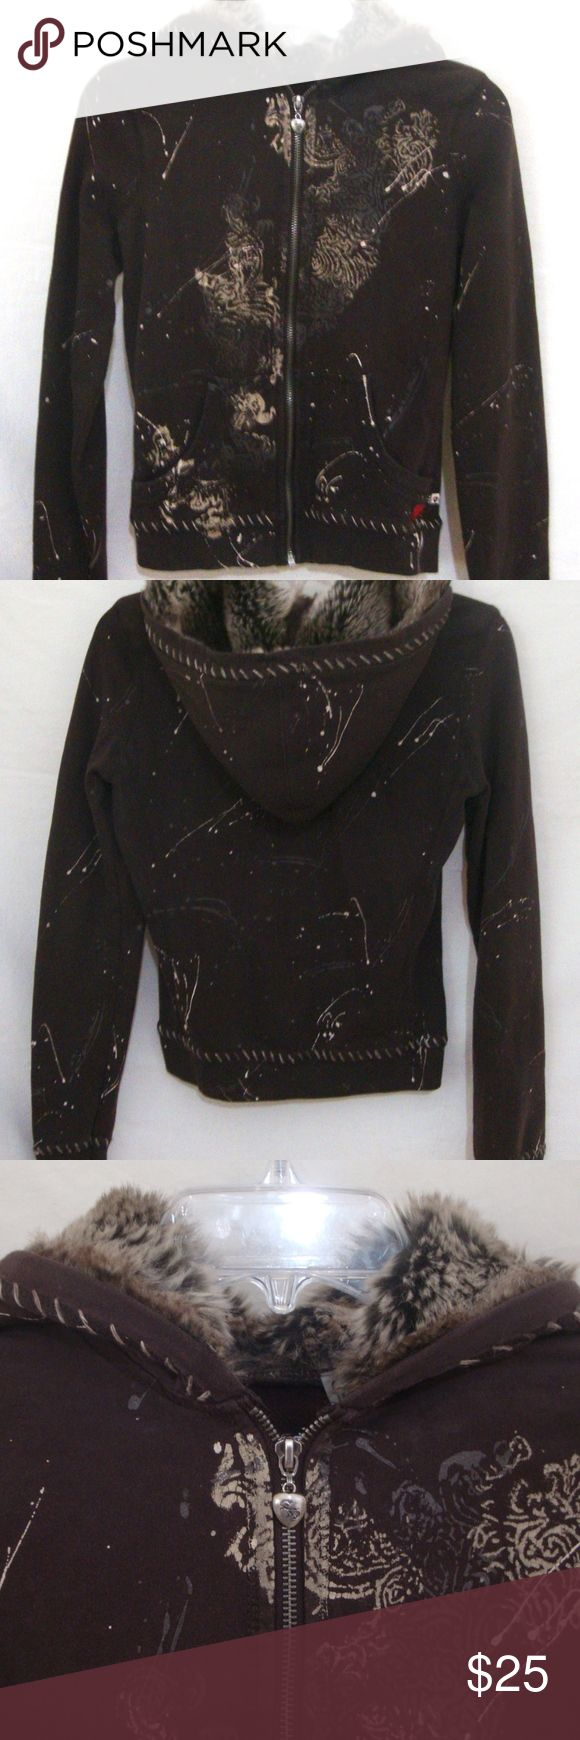 """Twisted Heart Fur Lined Hoodie Hand Painted Medium Twisted Heart Women's Fur Lined Hoodie, brown with gray & cream splatter paint design and silver heart charm zipper pull. Adorable zip front sweatshirt with long sleeves and front hand warmer pockets. Tag Size Medium. Measurements: chest 36"""", length 21"""". Good Overall Condition, no visible holes, or stains. Minor surface wear. Smoke Free Home.  Item # 34528-BIN4 TWISTED HEART Tops Sweatshirts & Hoodies"""